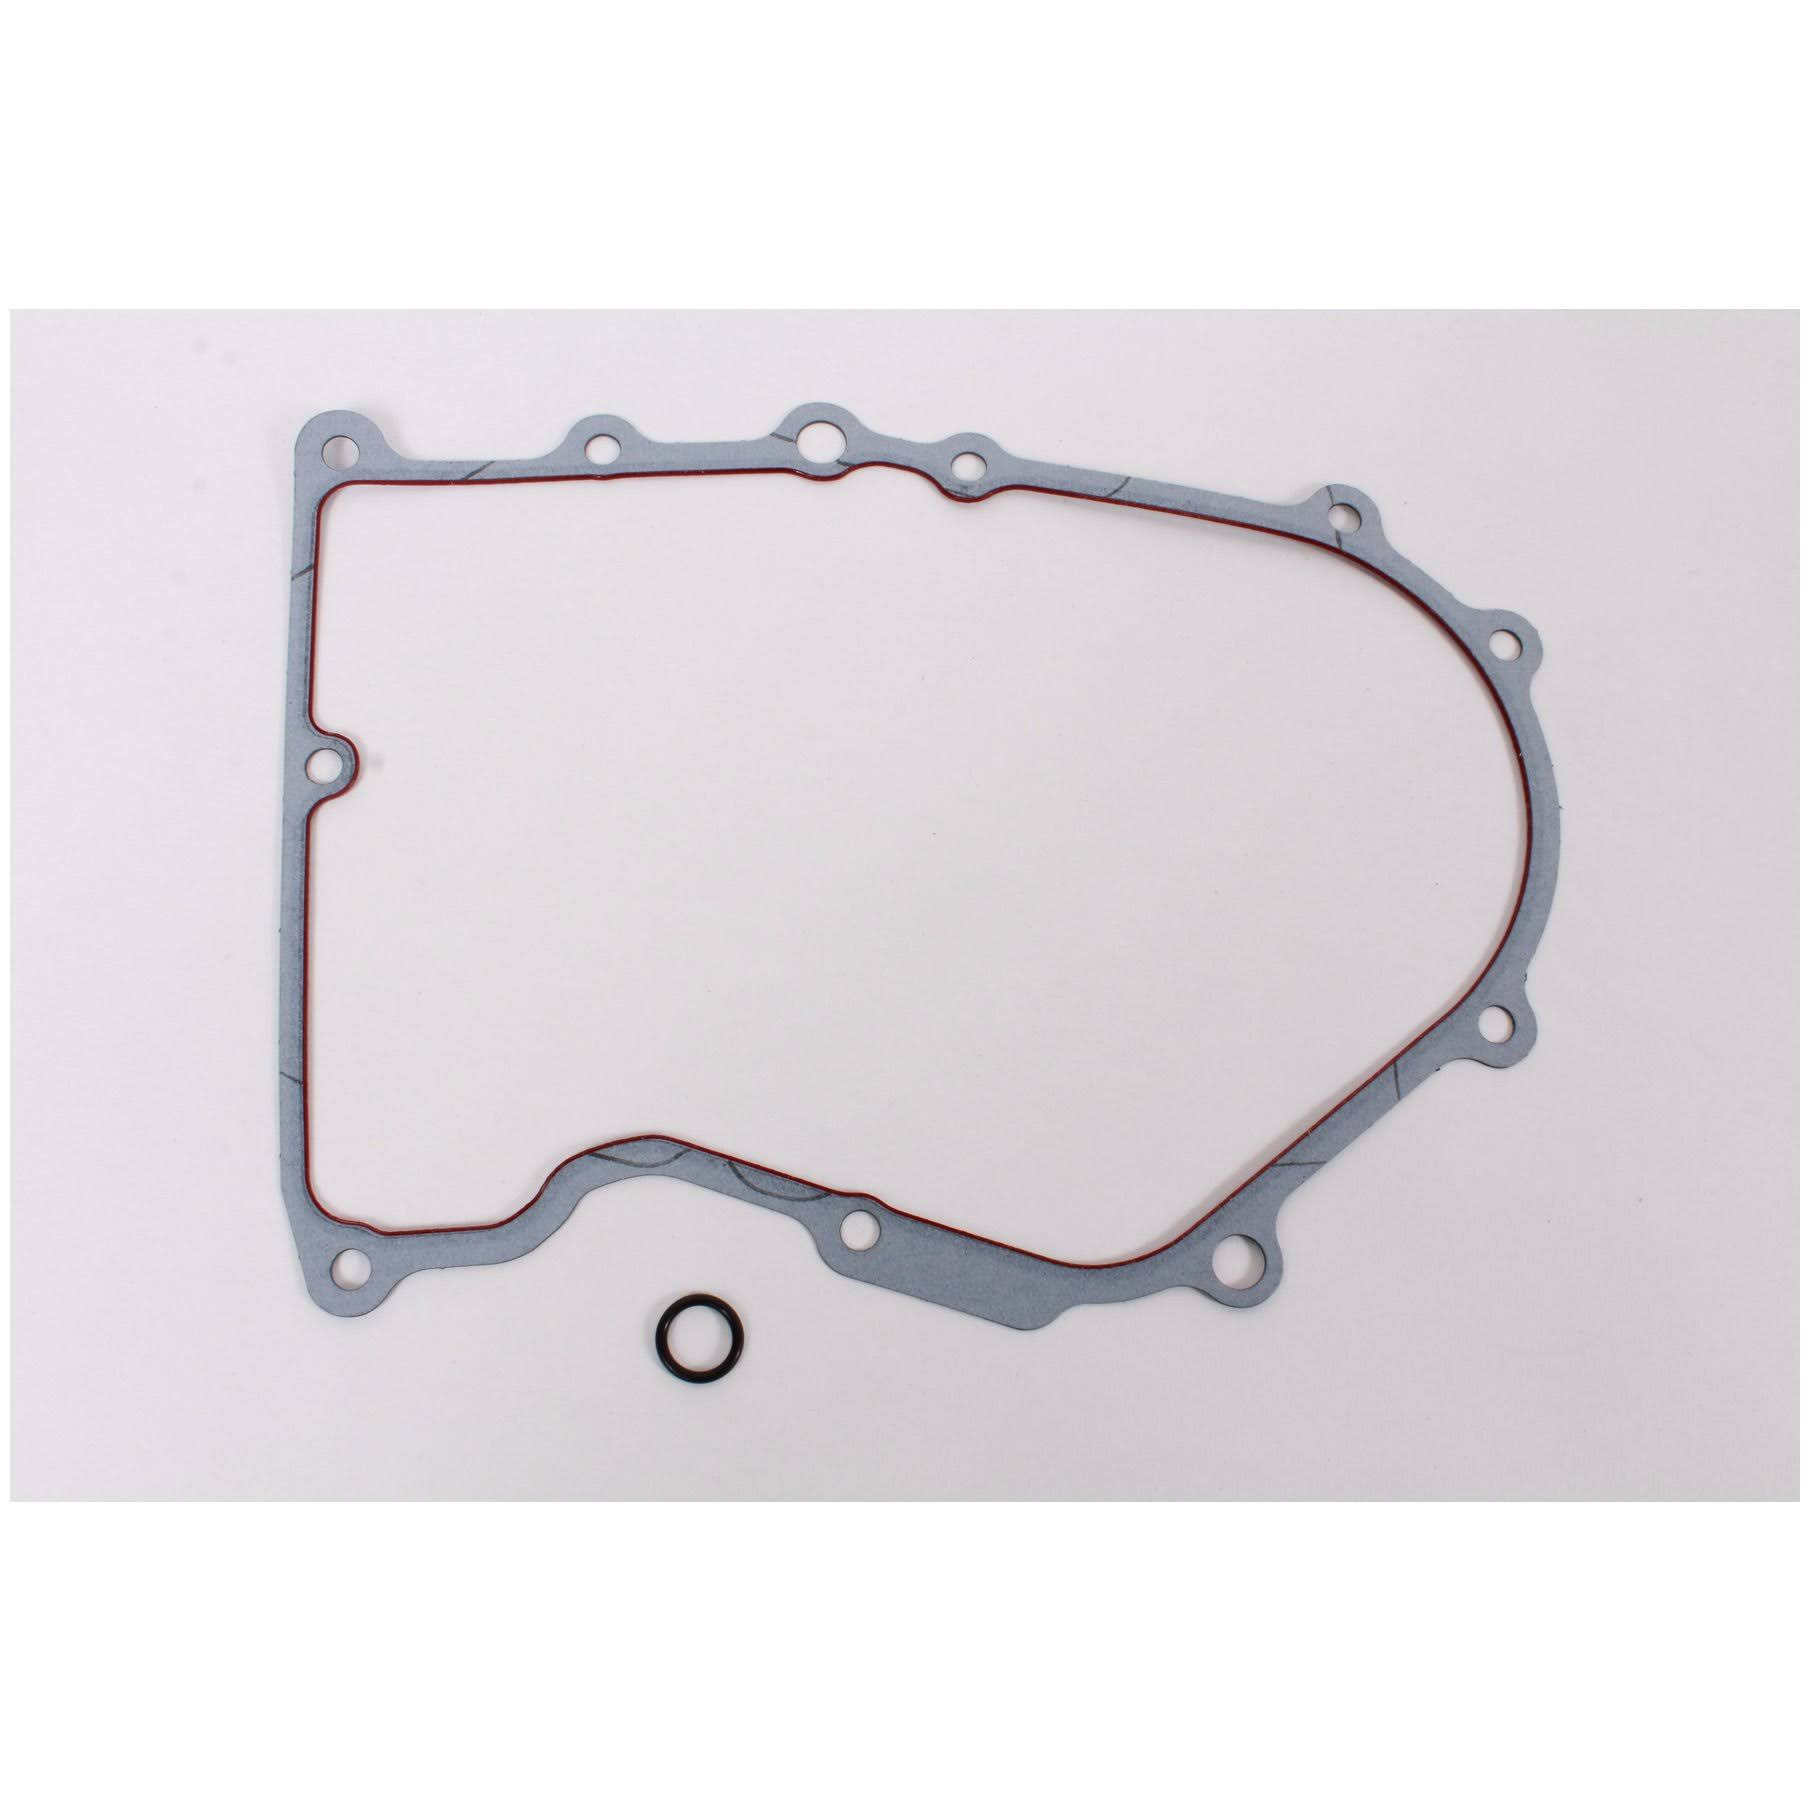 New Kohler OEM Oil Pan Gasket 2404154 2404154-s